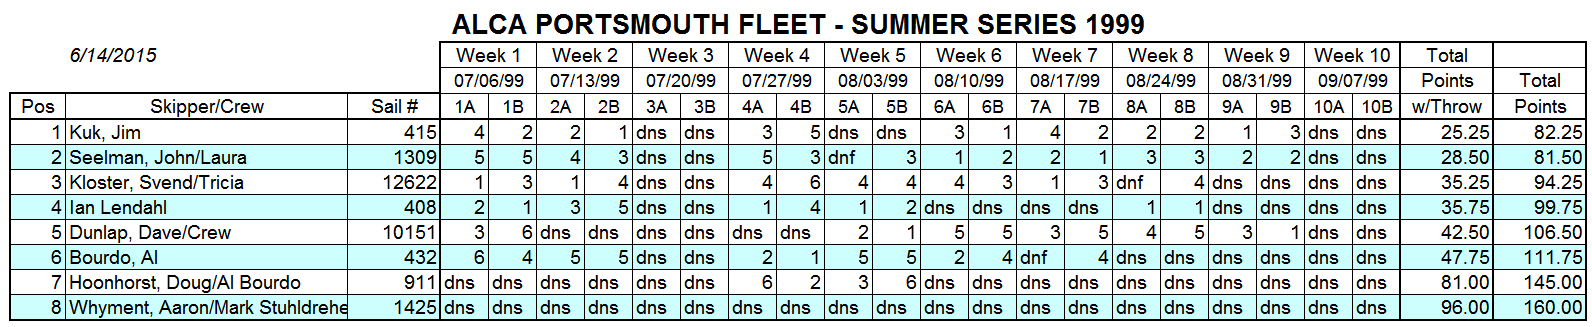 1999 Summer Portsmouth Fleet Results